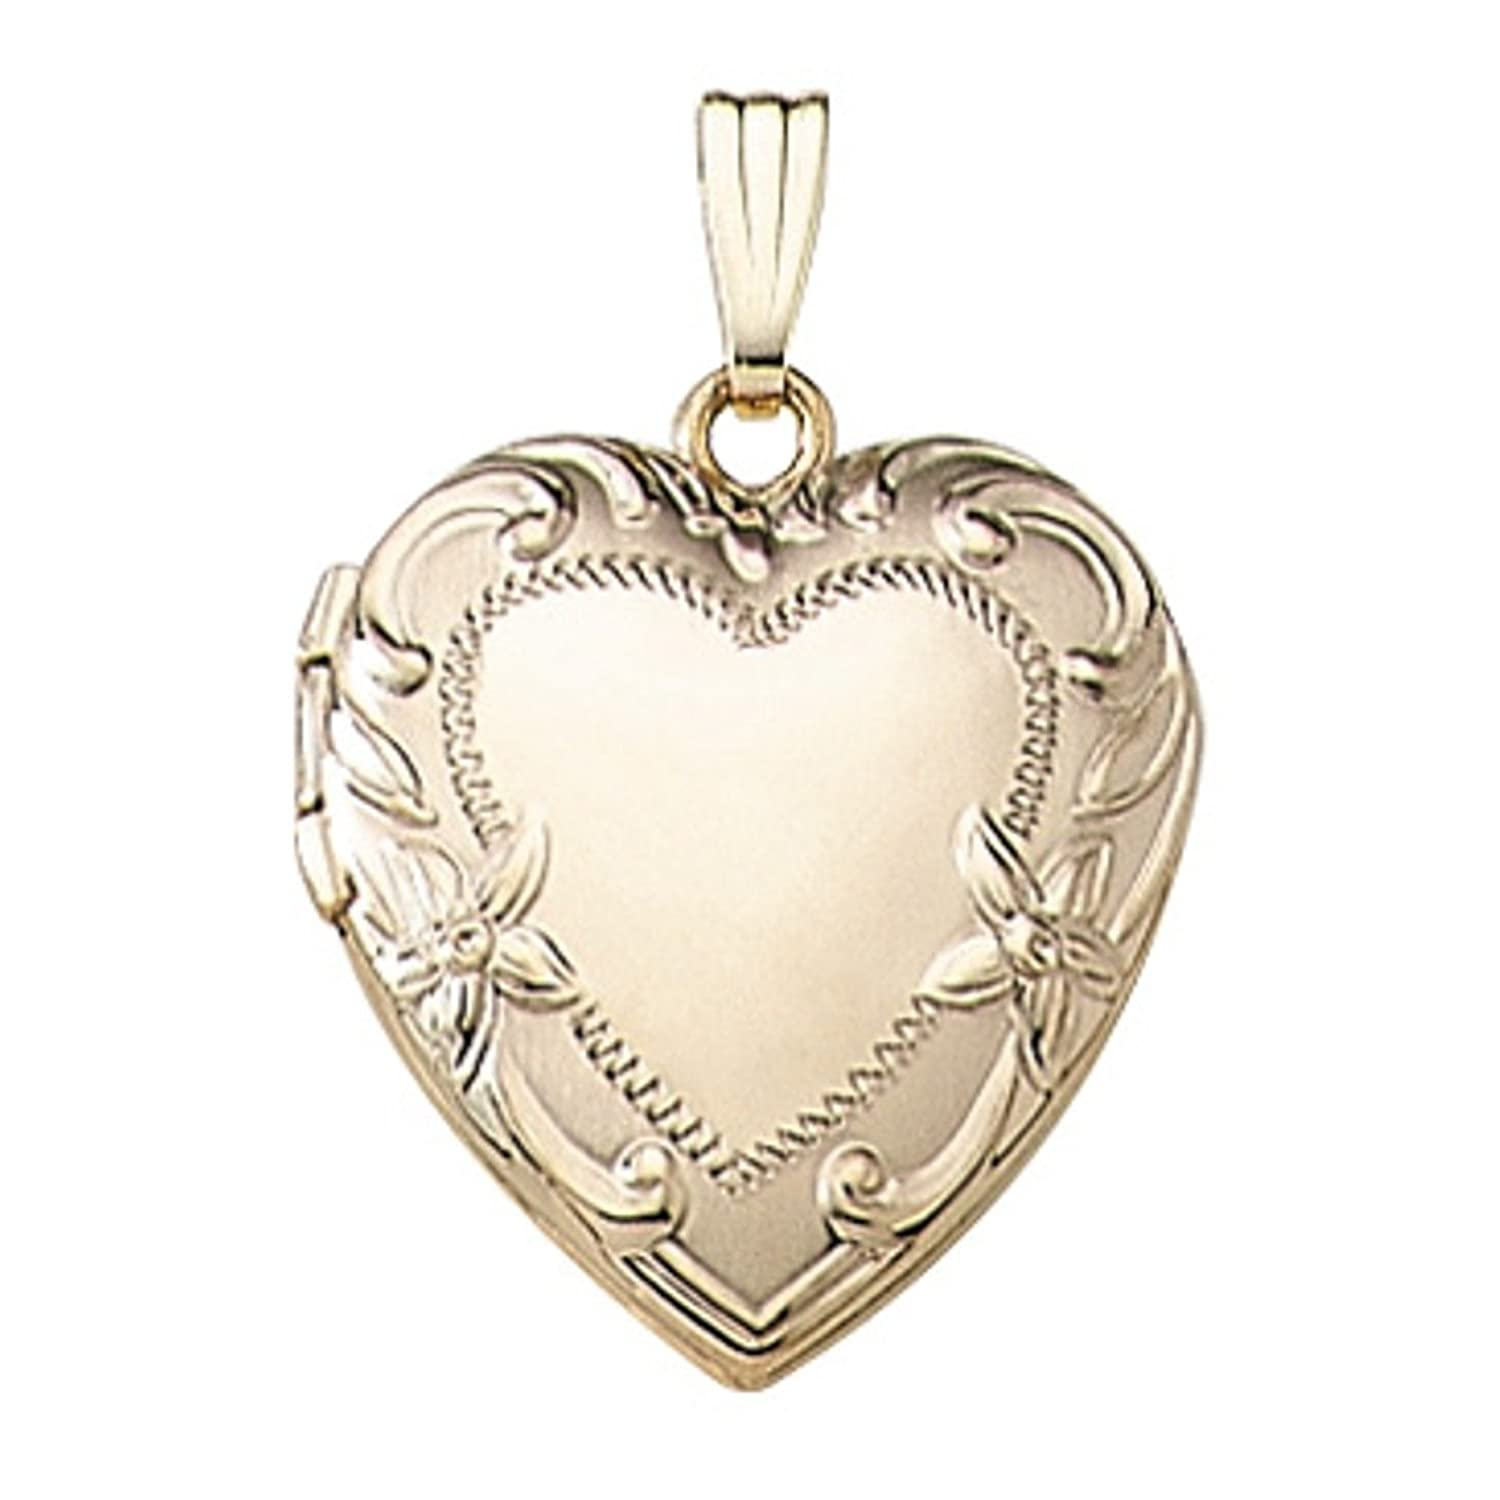 pendant new item wholesale fancy vintage locket photo color romantic lockets valentines s from in gift lovers plated women pendants men necklace gold heart real necklaces fashion solid jewelry